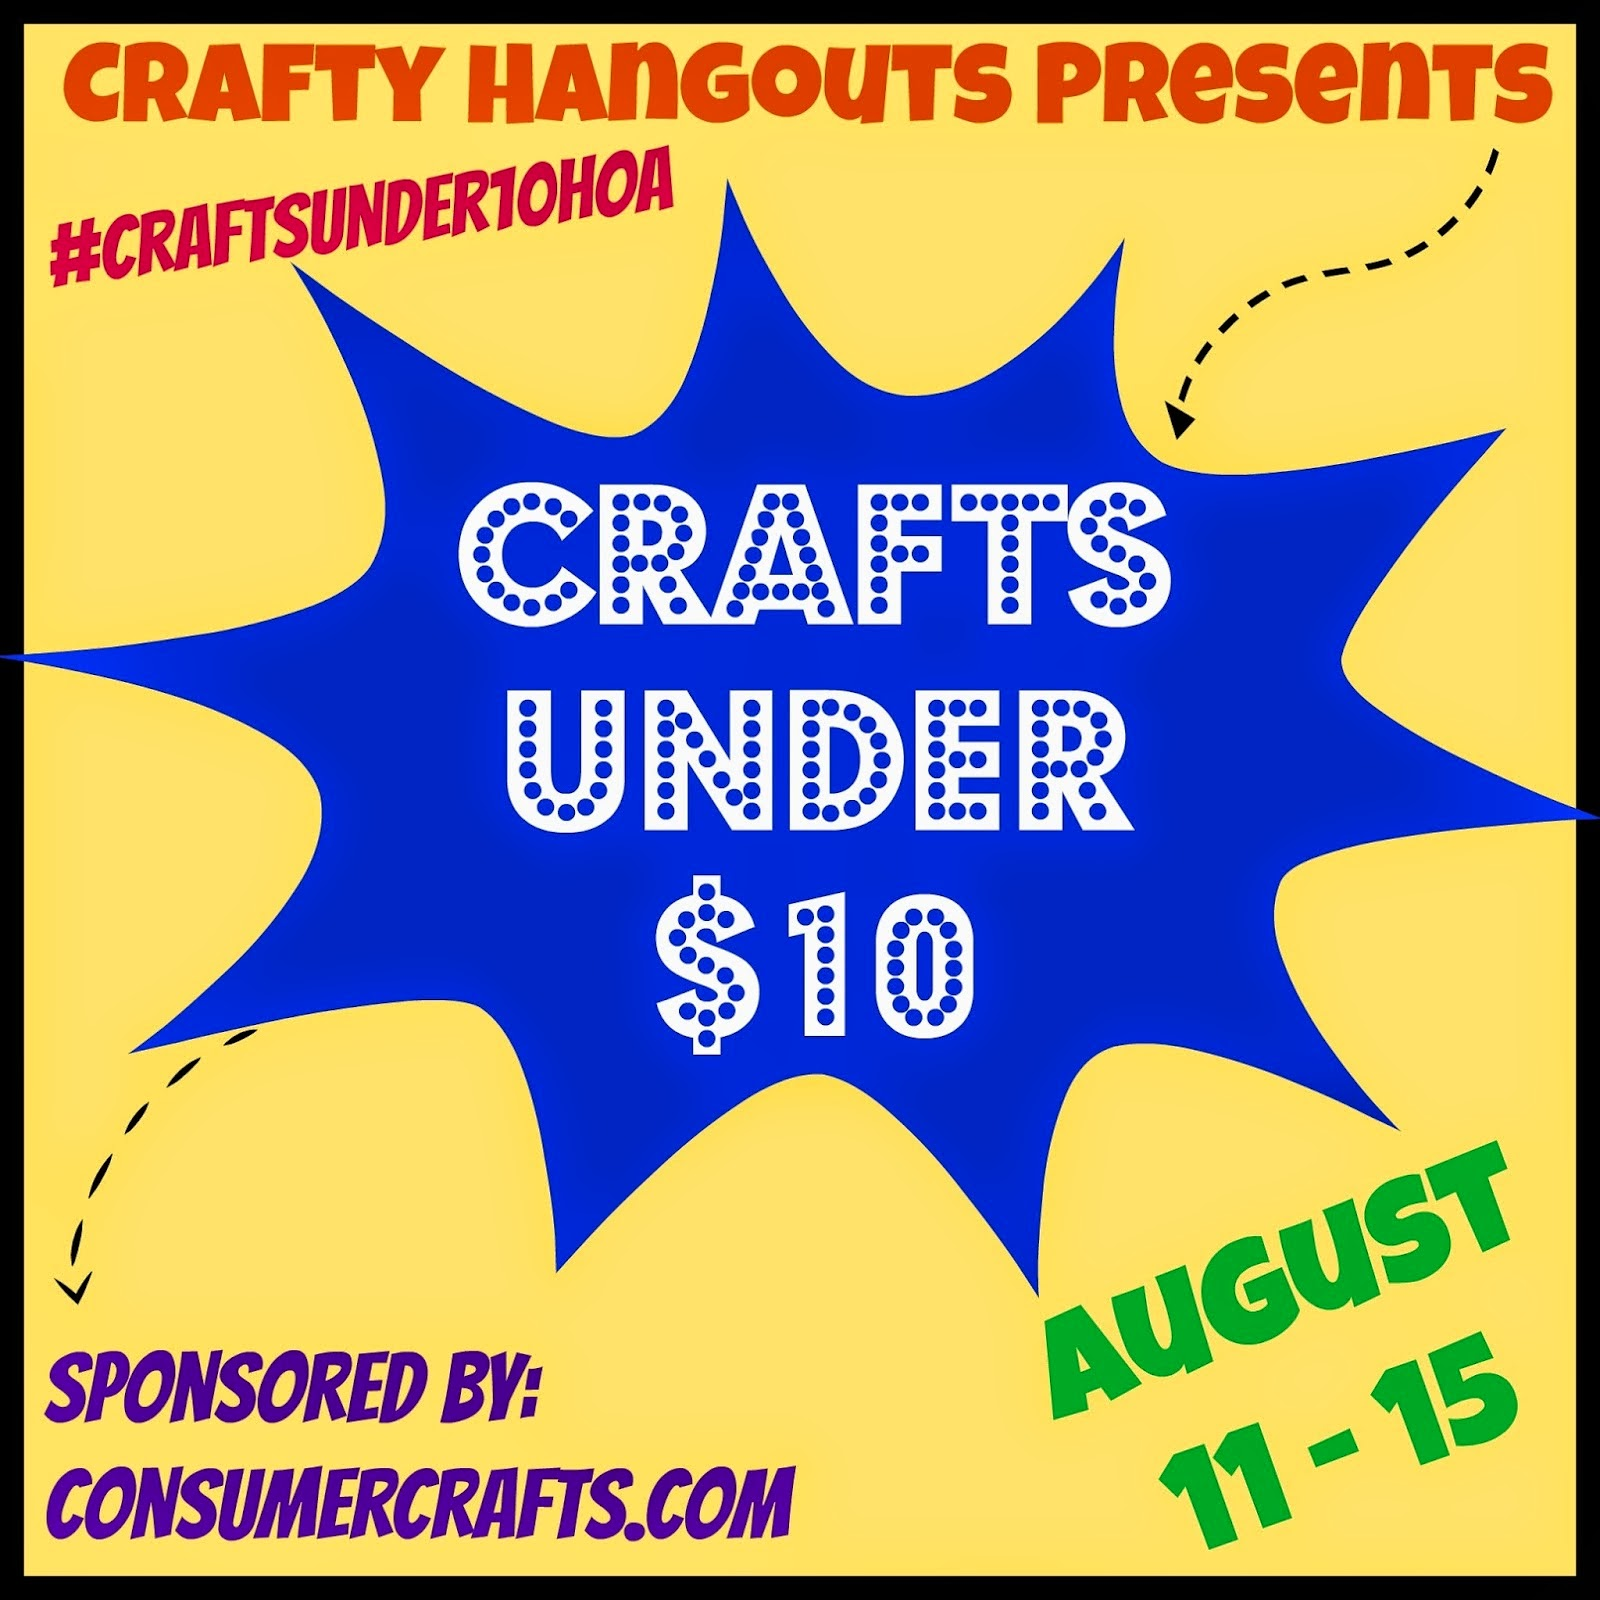 http://www.craftyhangouts.com/2014/08/crafts-under-10.html